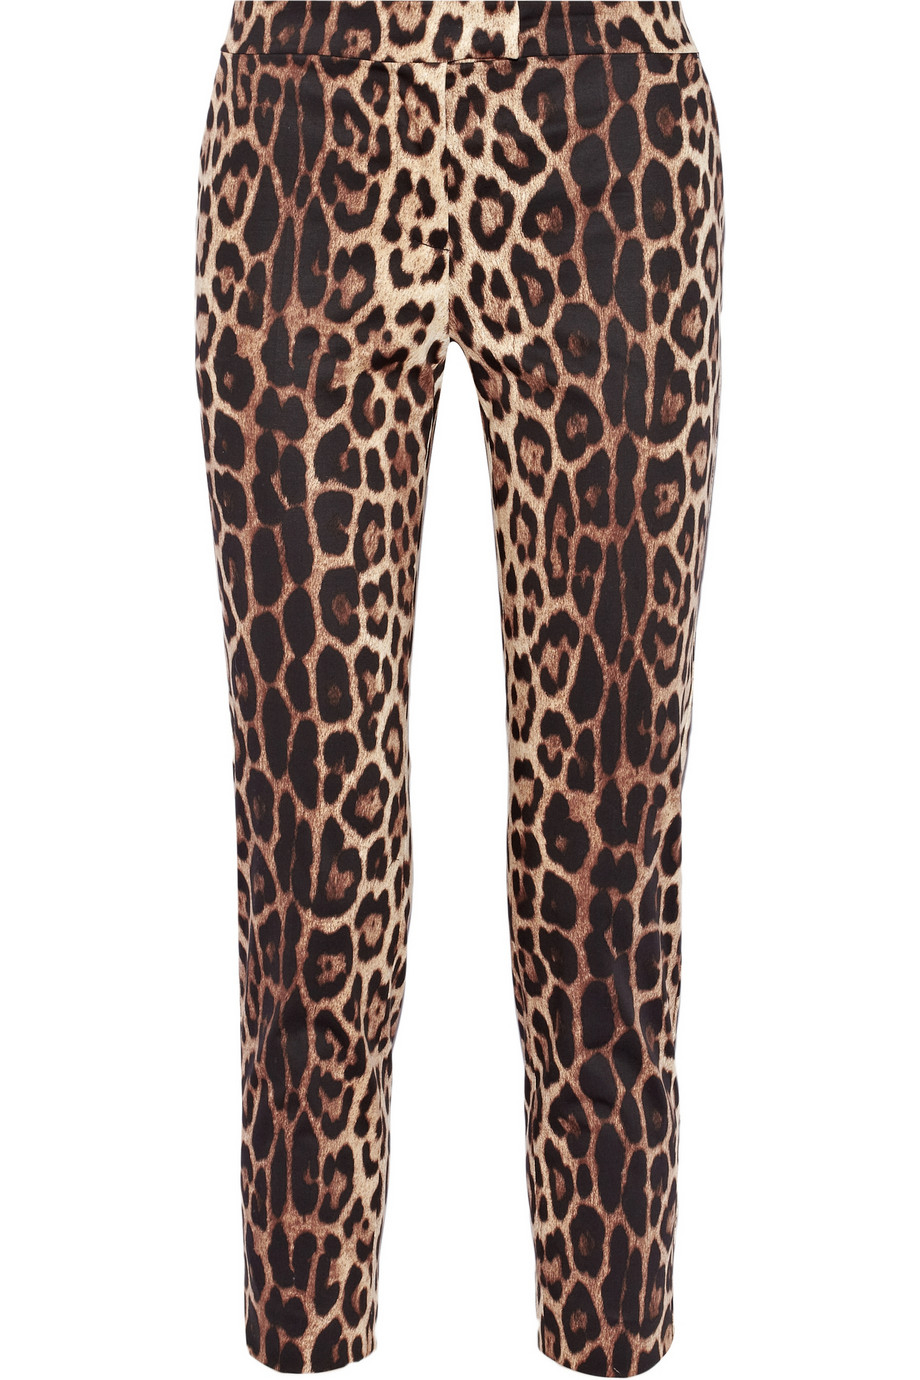 Charlotte On The Cheap >> Lyst - Boutique Moschino Cropped Leopard-Print Stretch-Cotton Pants in Brown